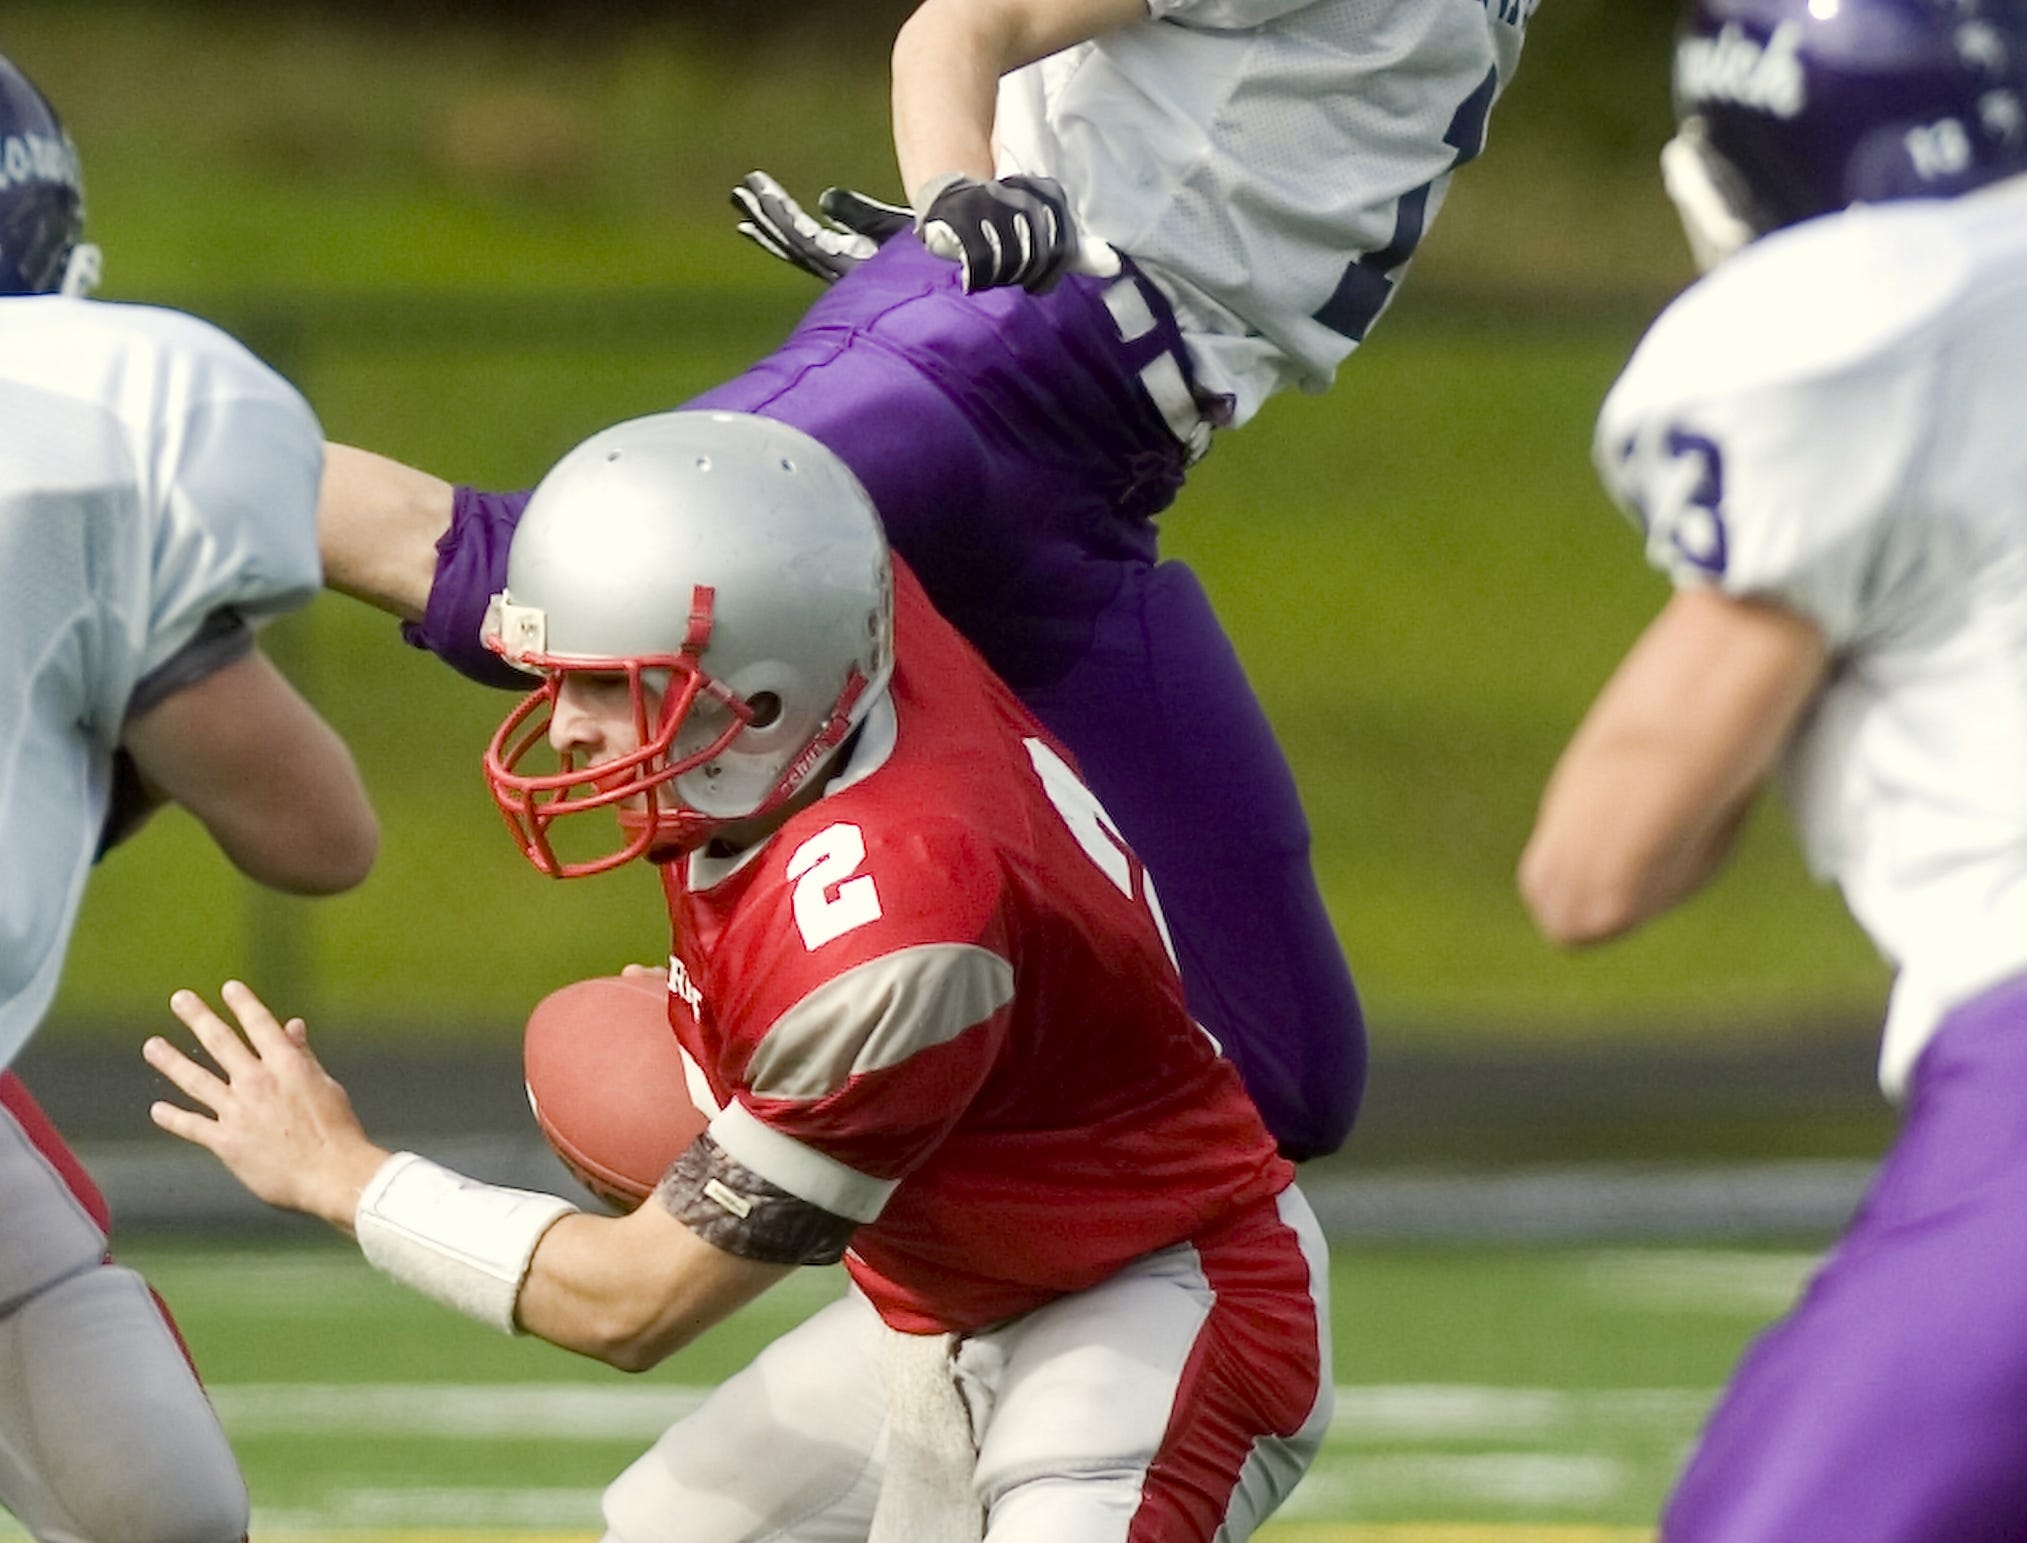 From 2009: Norwich's Casey Edwards, top, overshoots his target, Chenango Valley's Ricky Ruffo in the first quarter of Saturday's game at Greene.